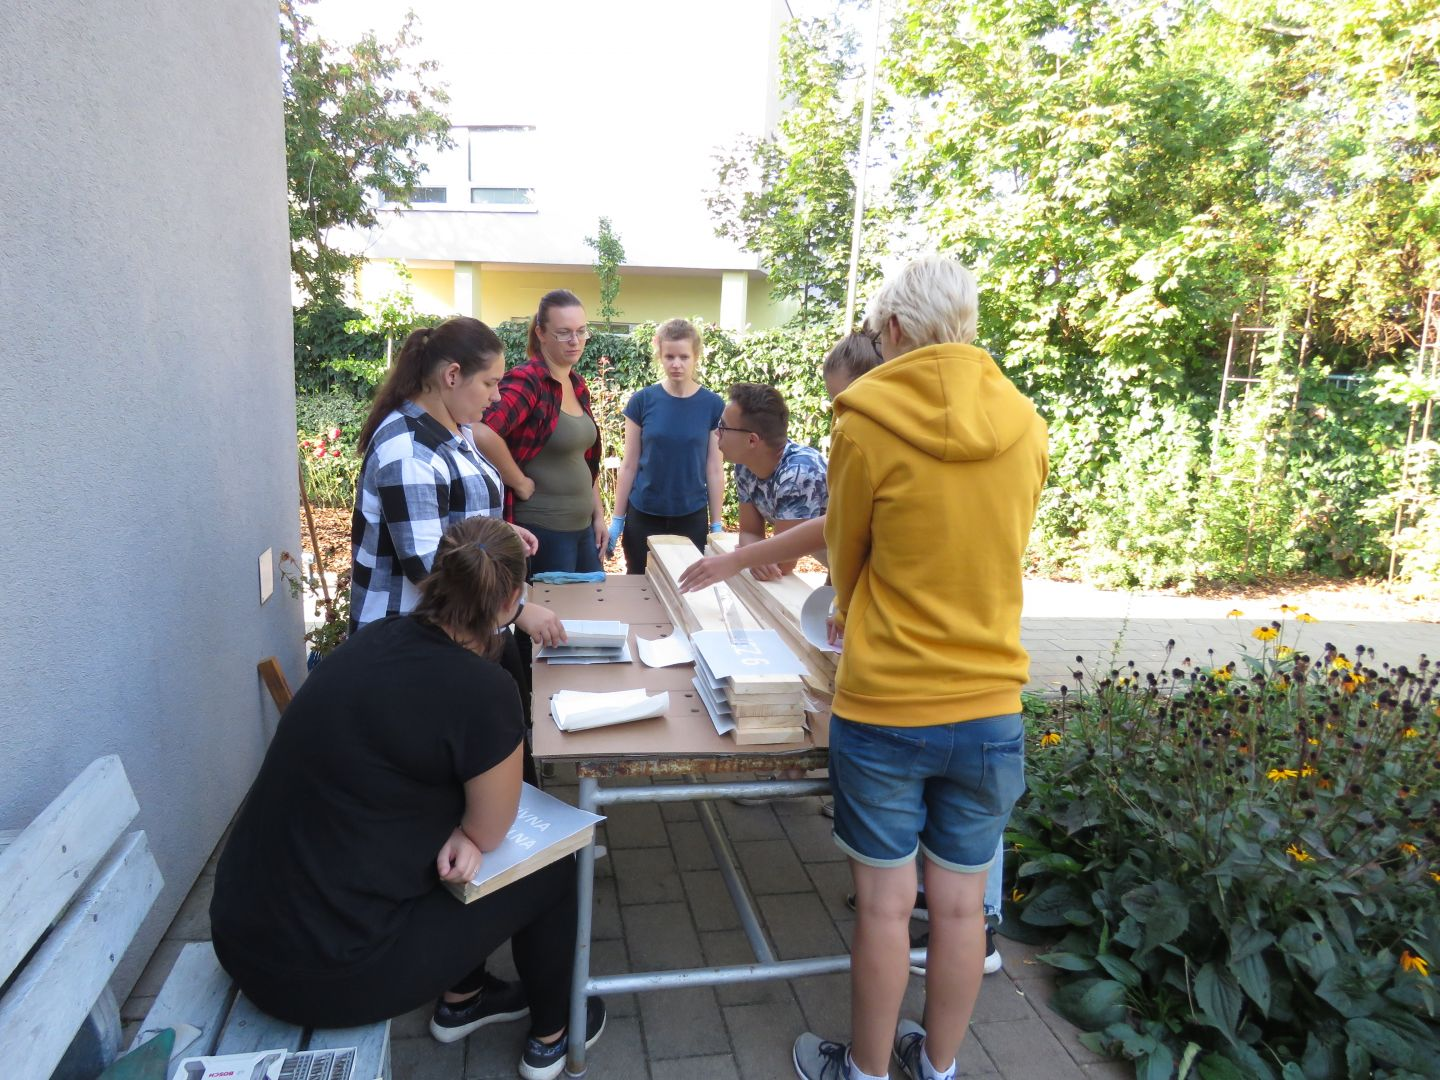 Results of pedagogical research in the Interactive Experimental Garden